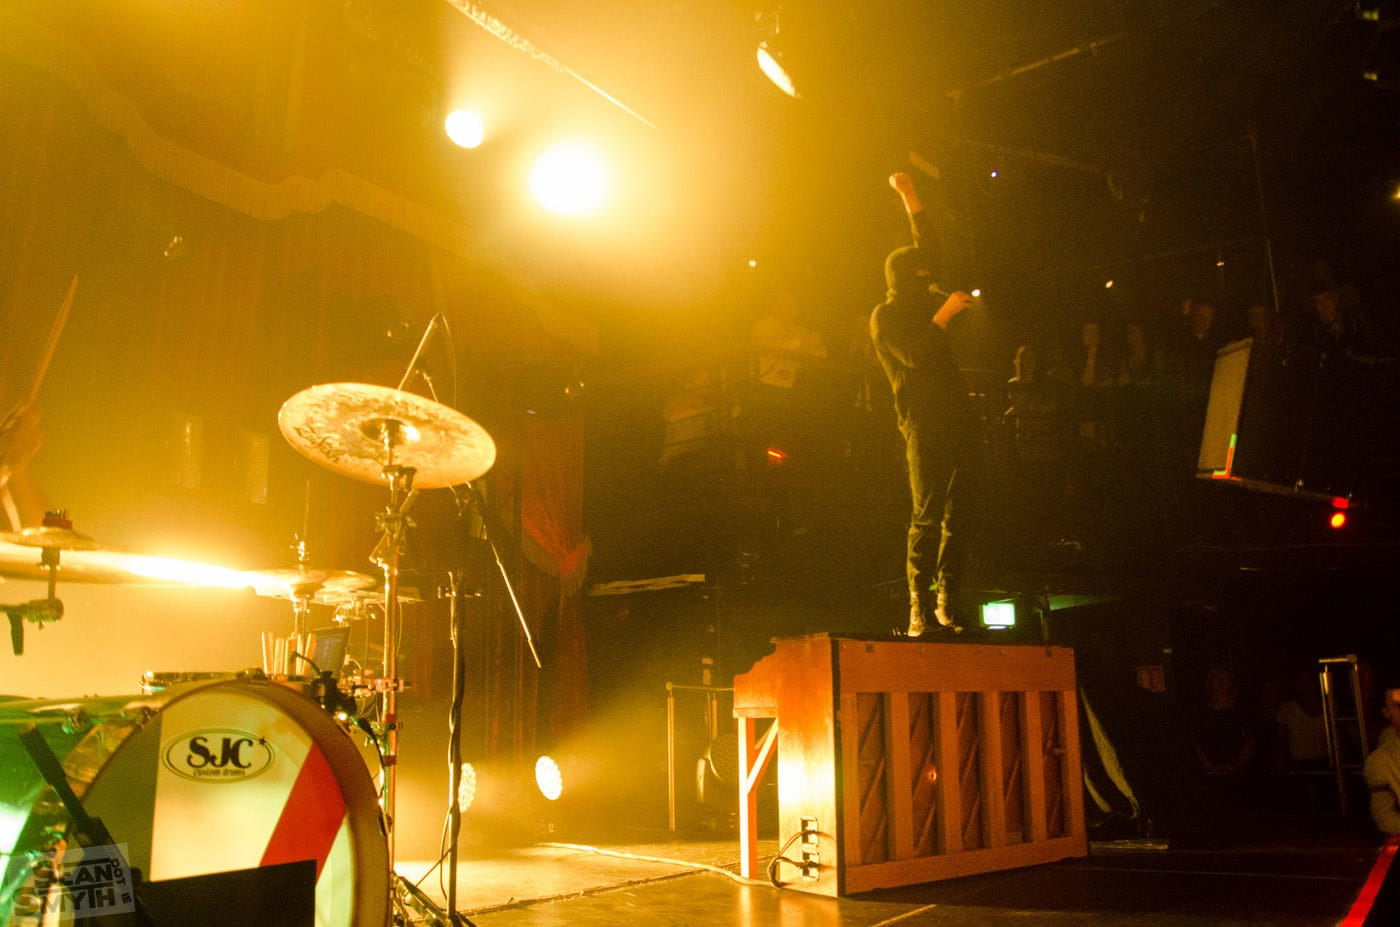 twenty-one-pilots-at-the-academy-by-sean-smyth-16-11-14-12-of-41_15621968780_o